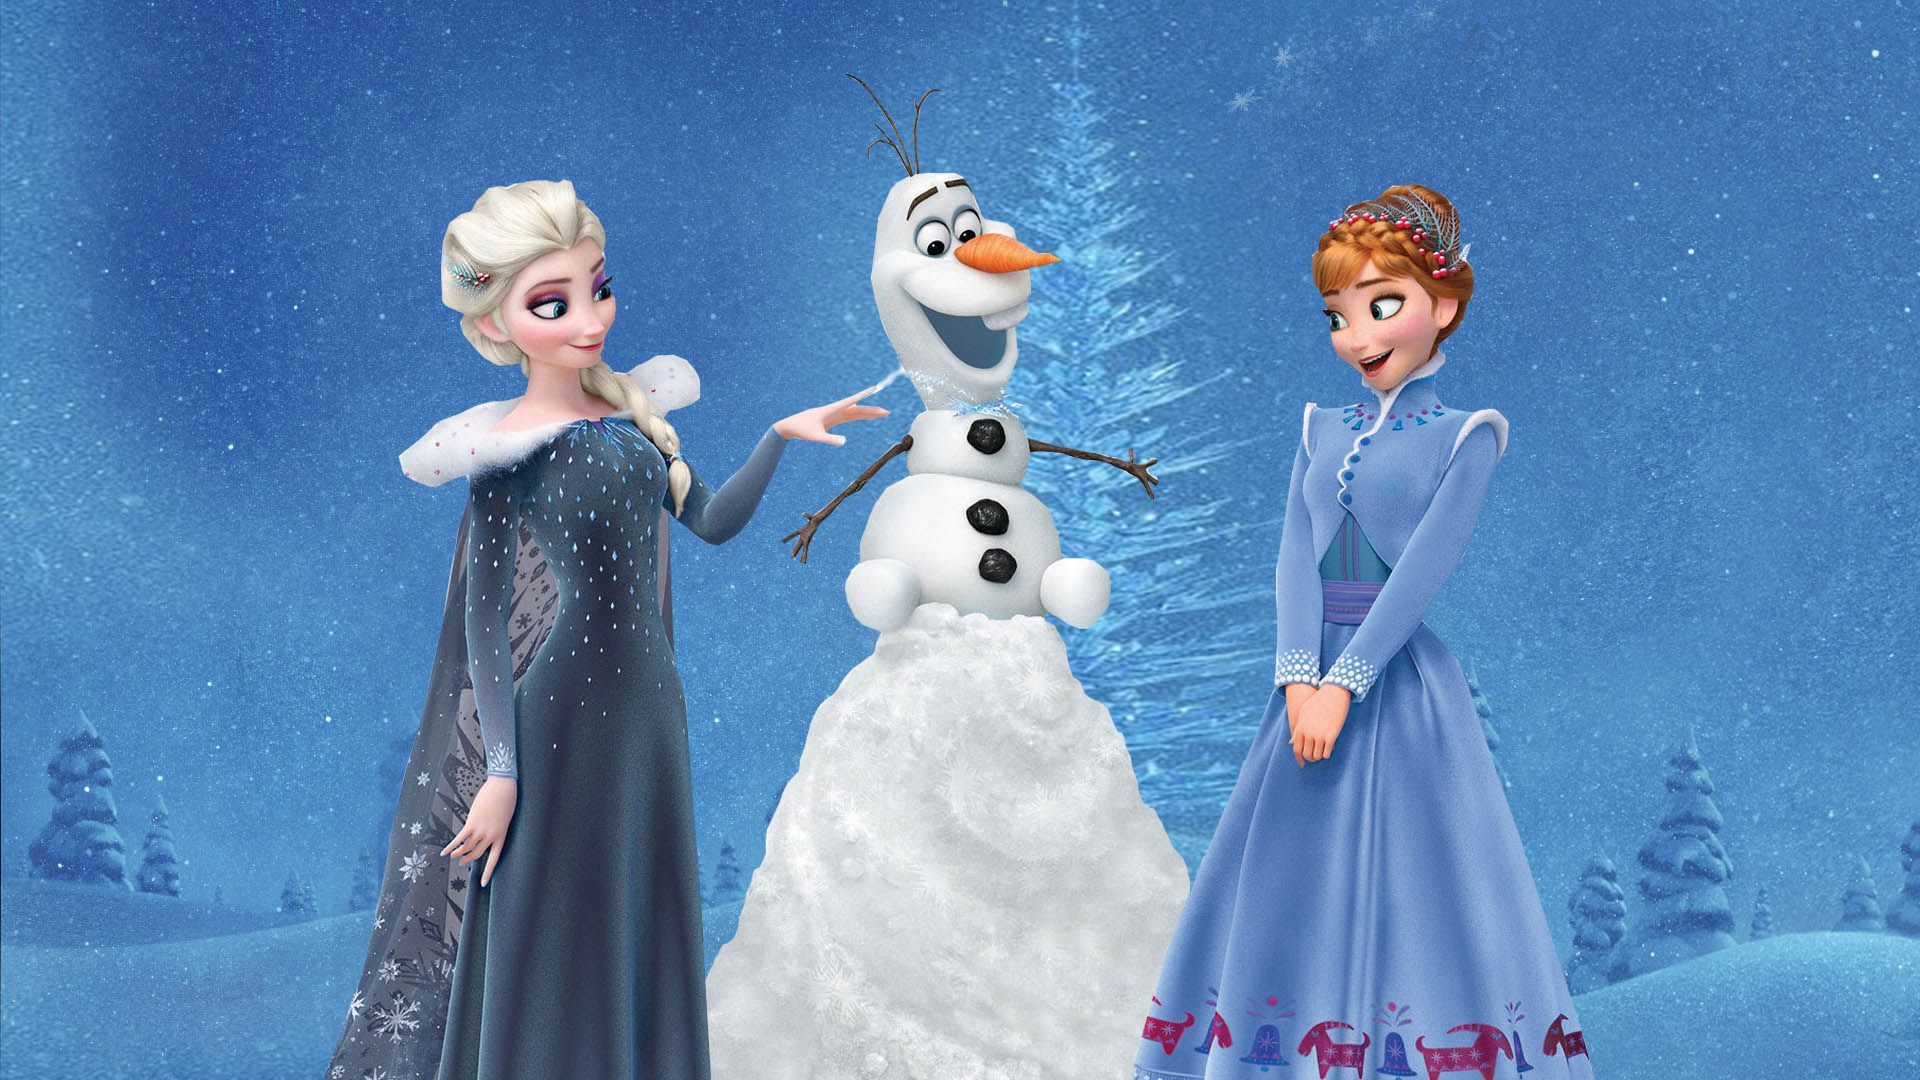 Olaf S Frozen Adventure Anna Elsa Wallpaper With Images Olaf